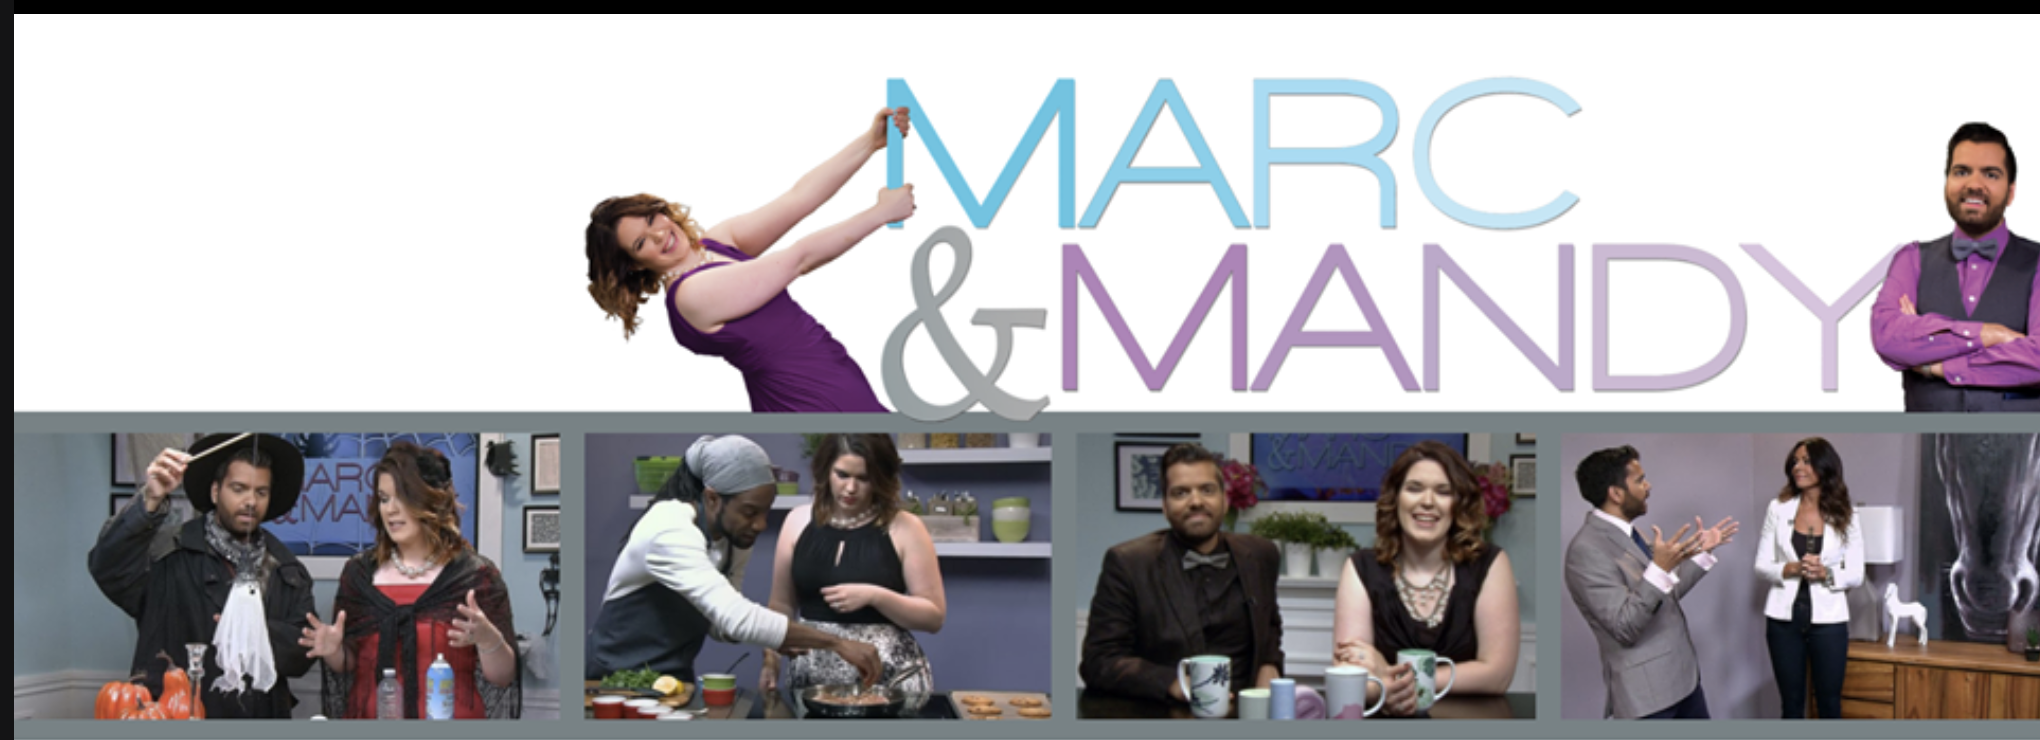 LETTER OF THE DAY> Marc & Mandy Show come to The Continental Dance Club THIS WEDNESDAY!